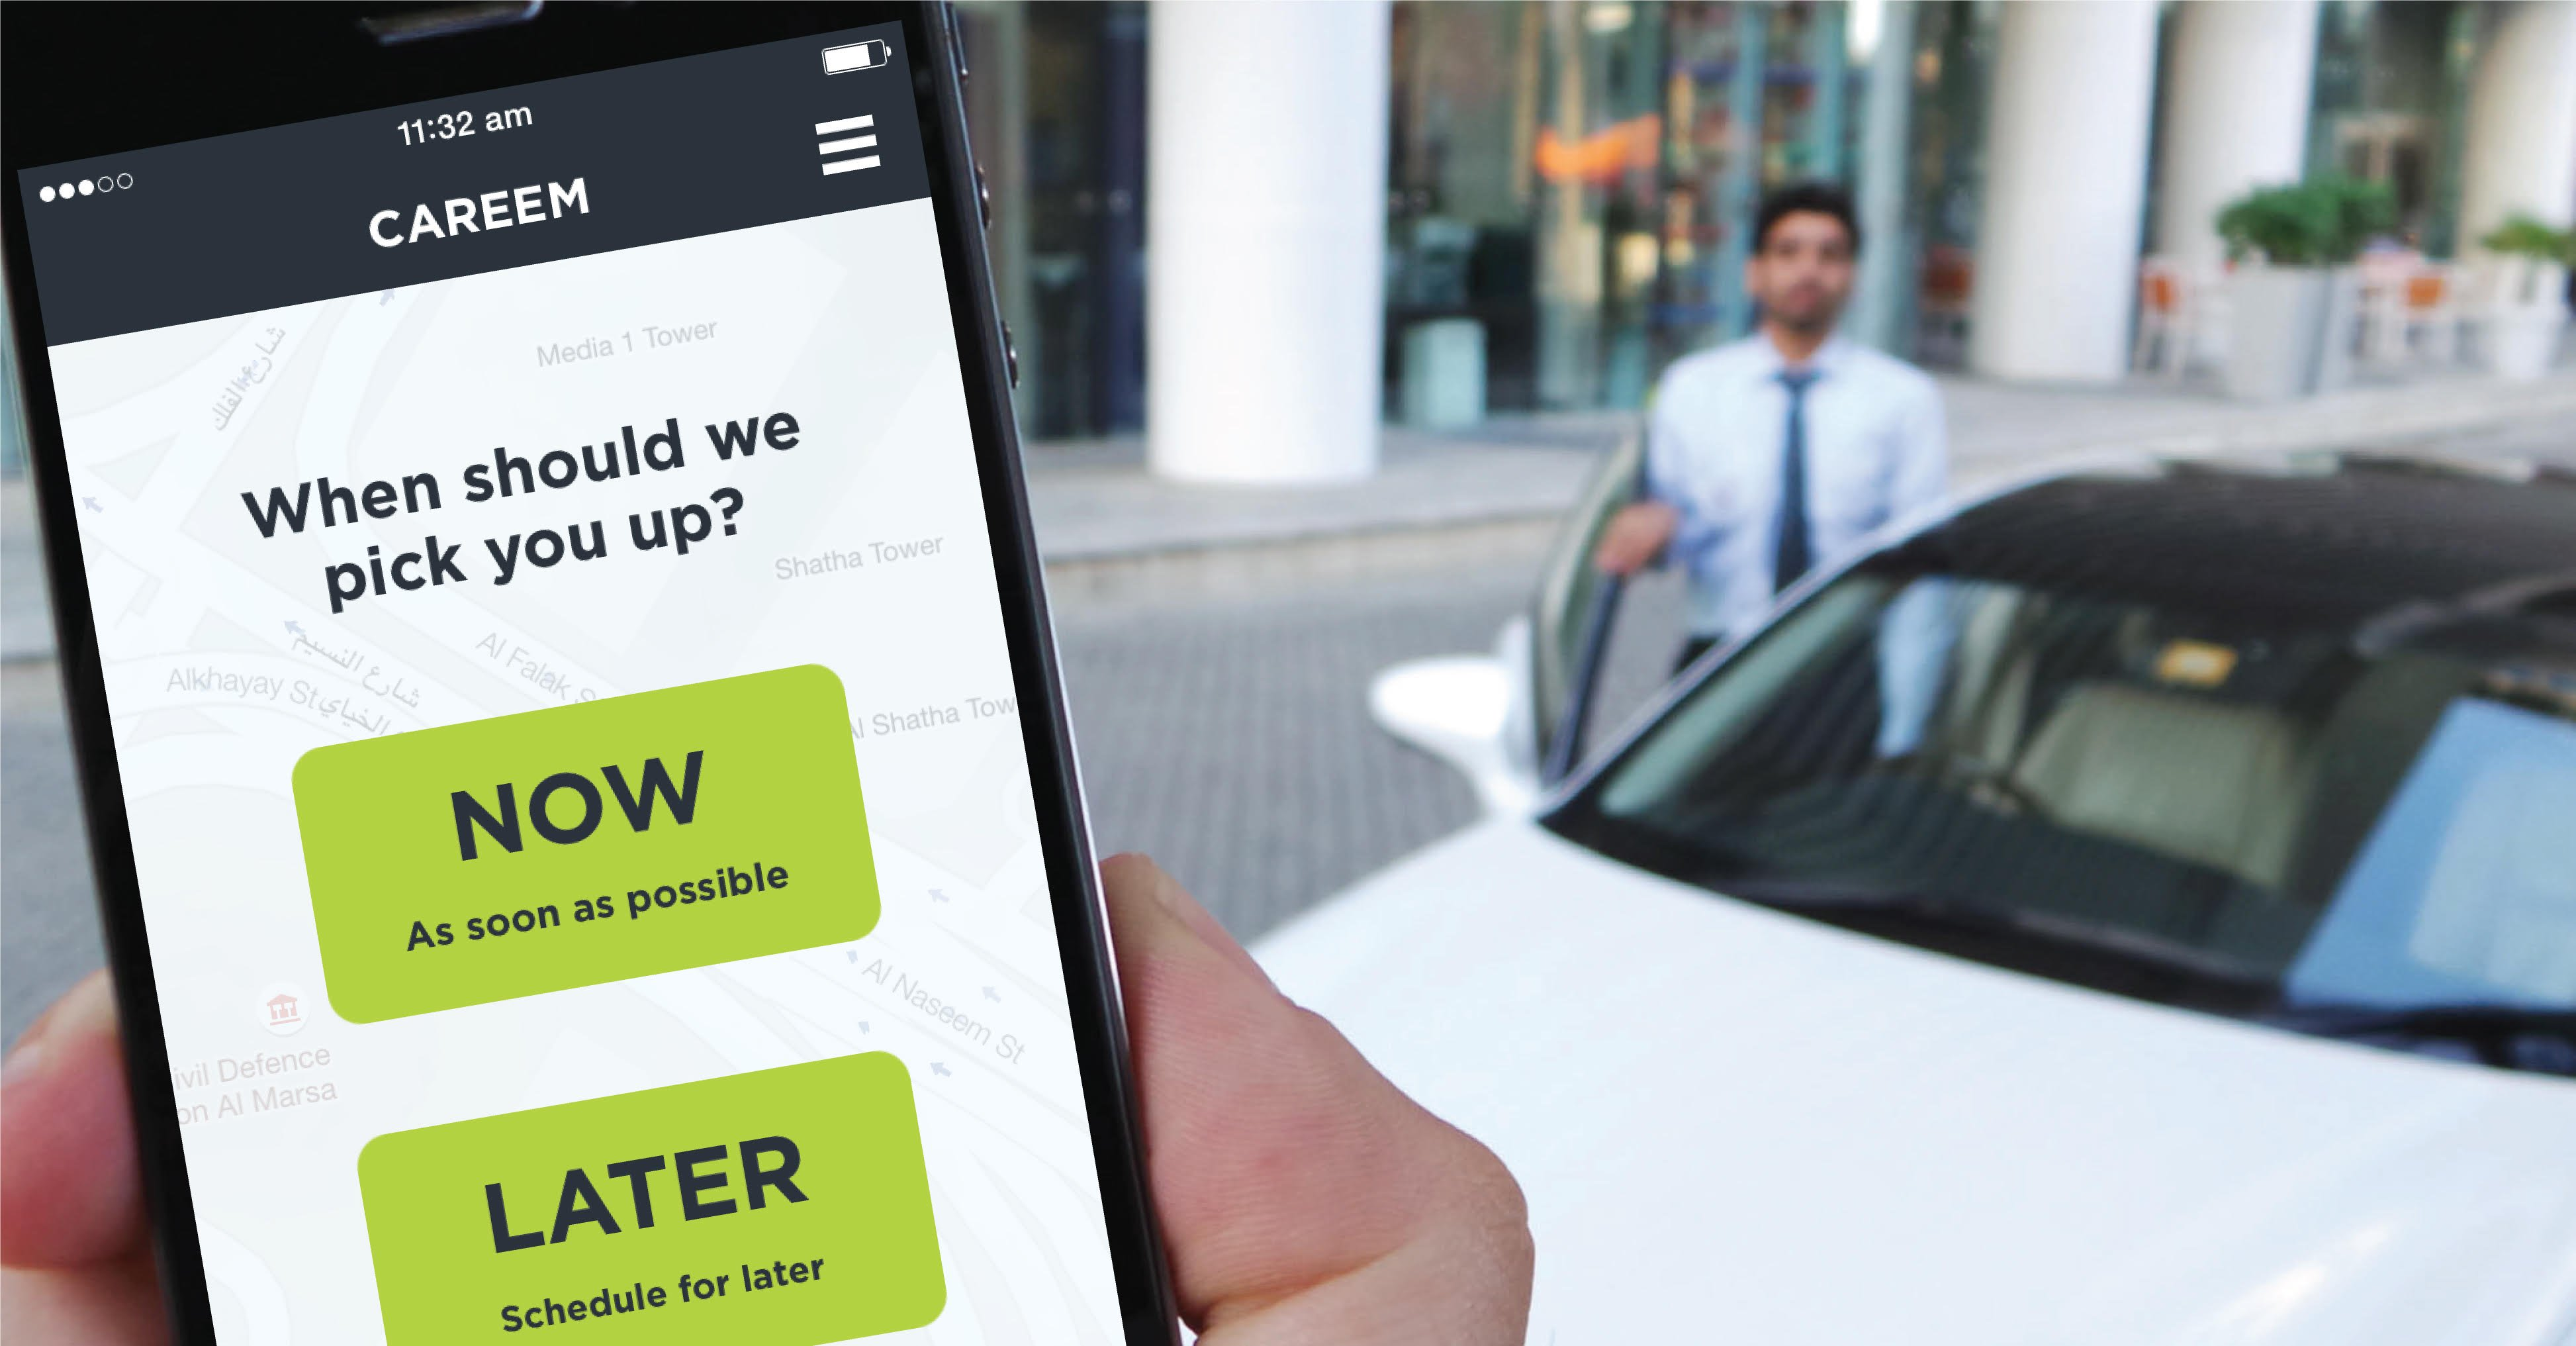 The taxi-hailing service is popular among many who want to travel safe, but some reports of harassment have emerged. PHOTO: CAREEM